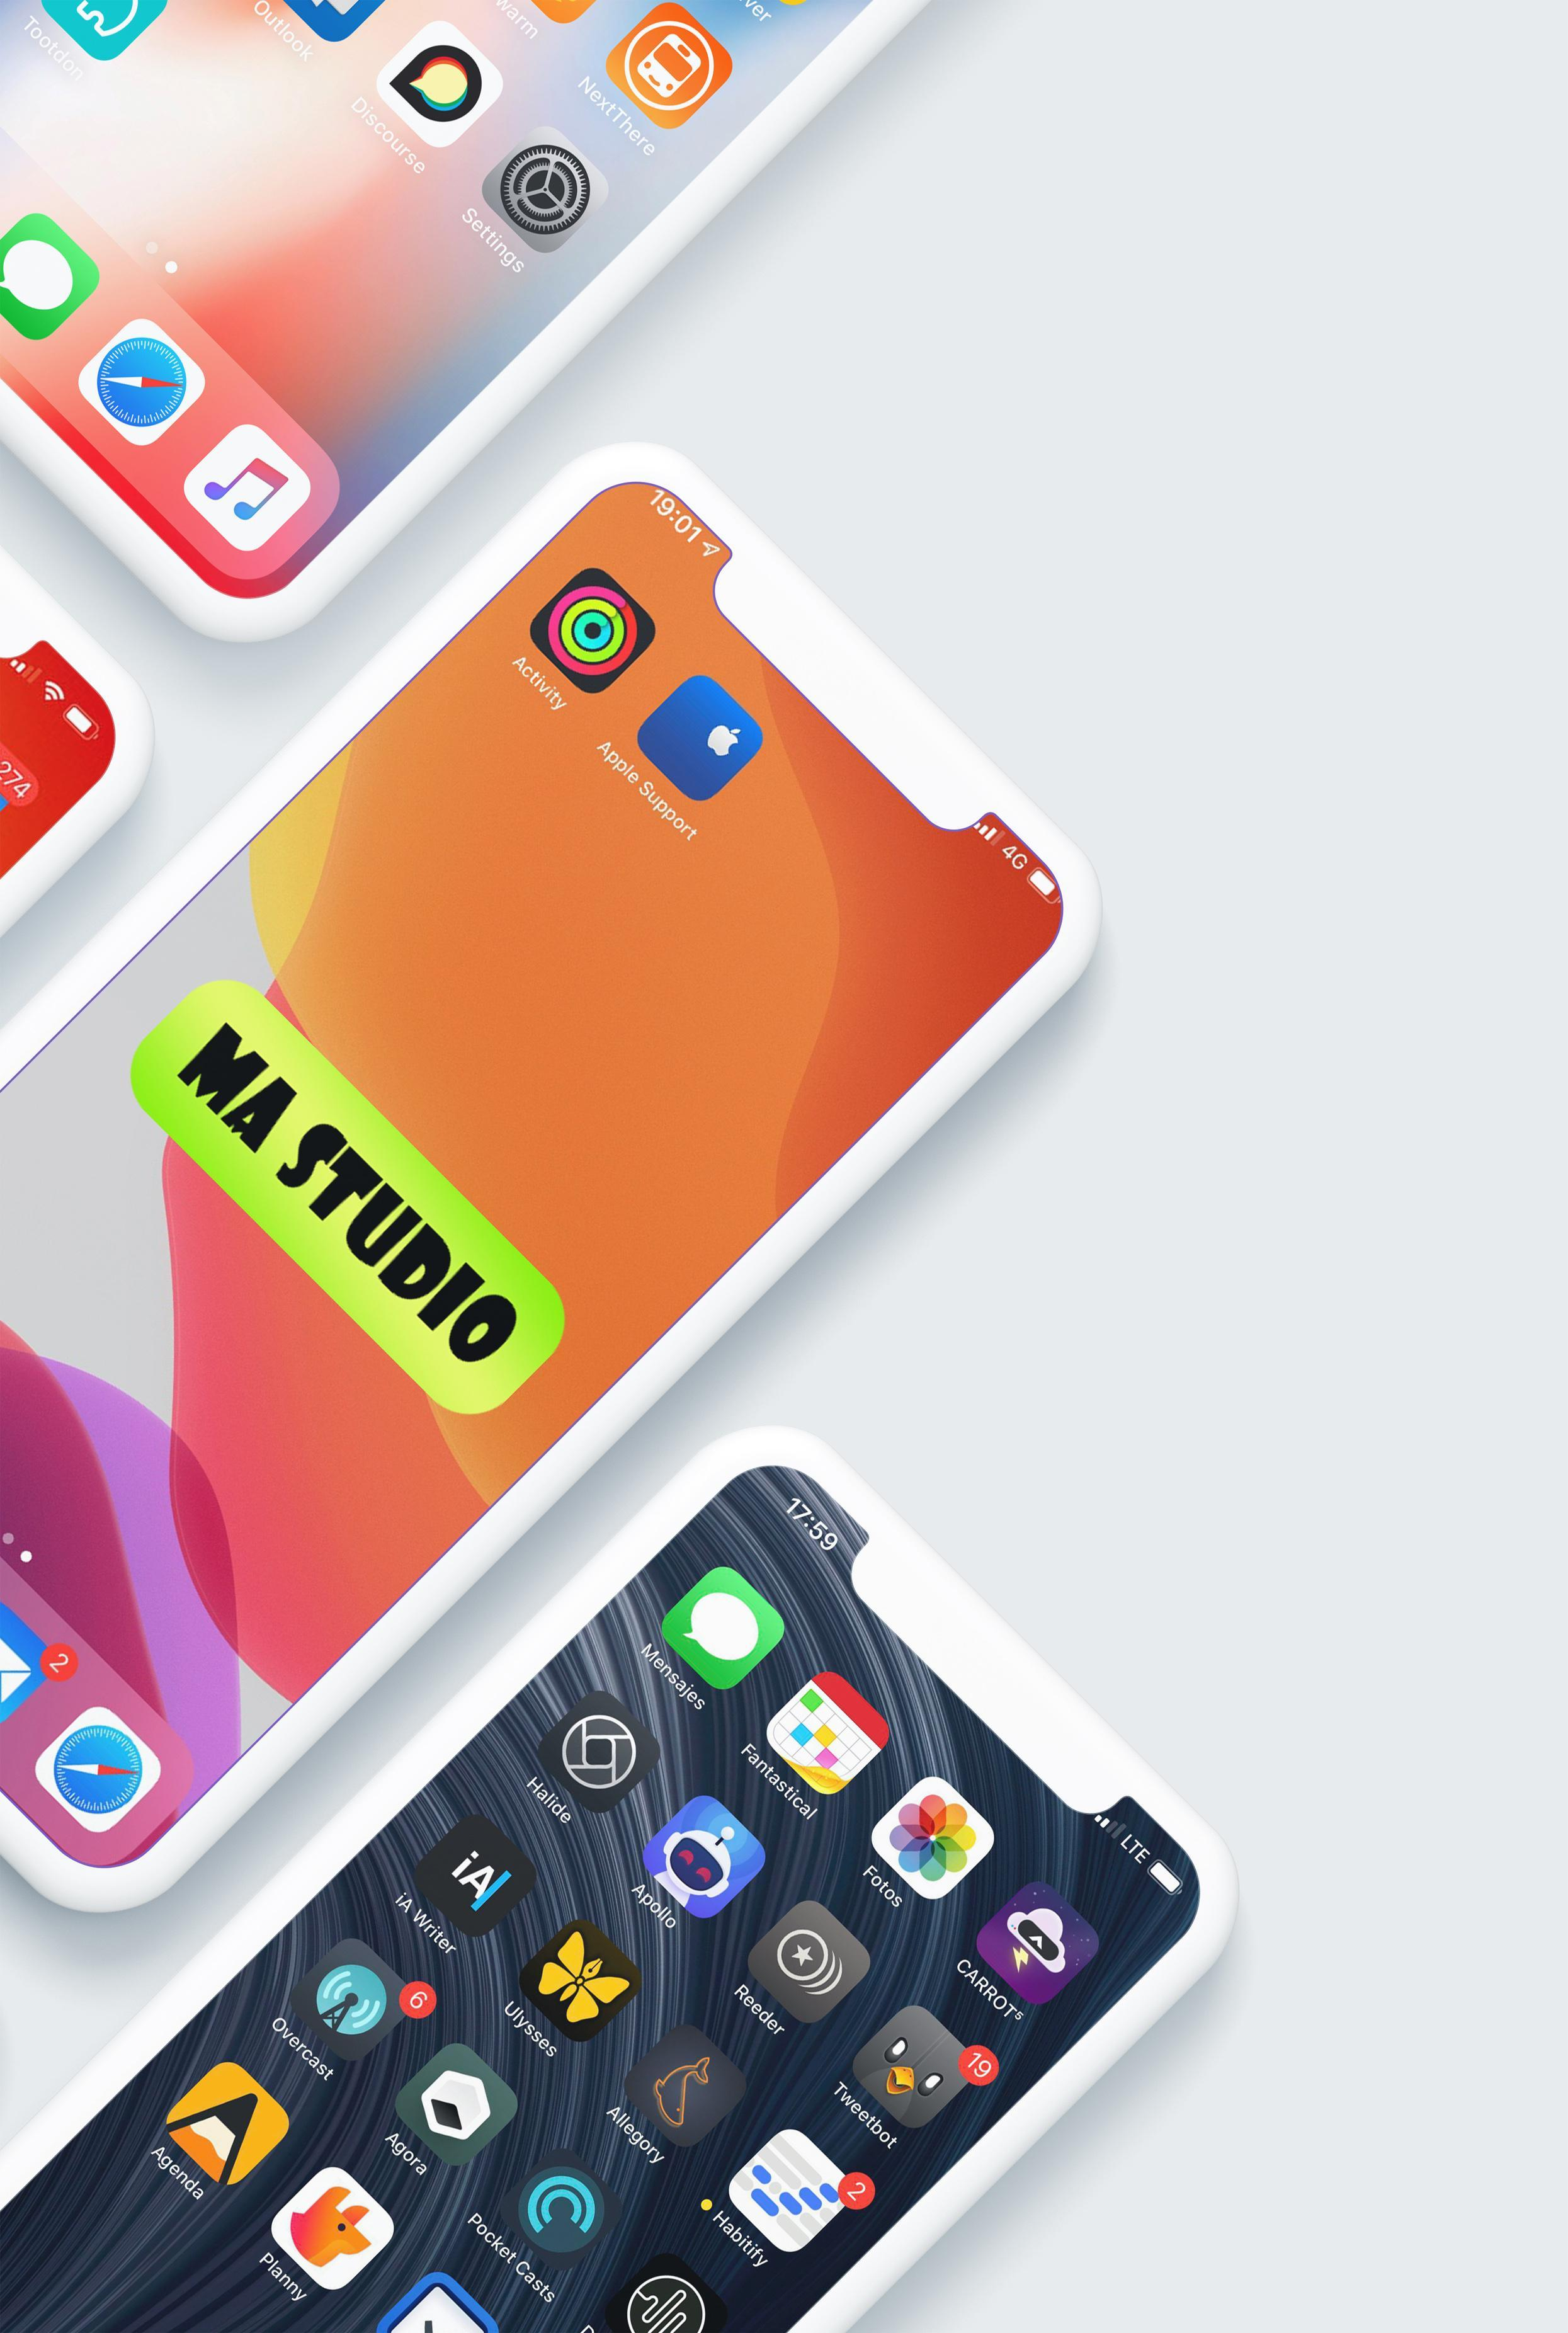 IOS 1 Theme, ICON PACK for IOS 1 for Android - APK Download